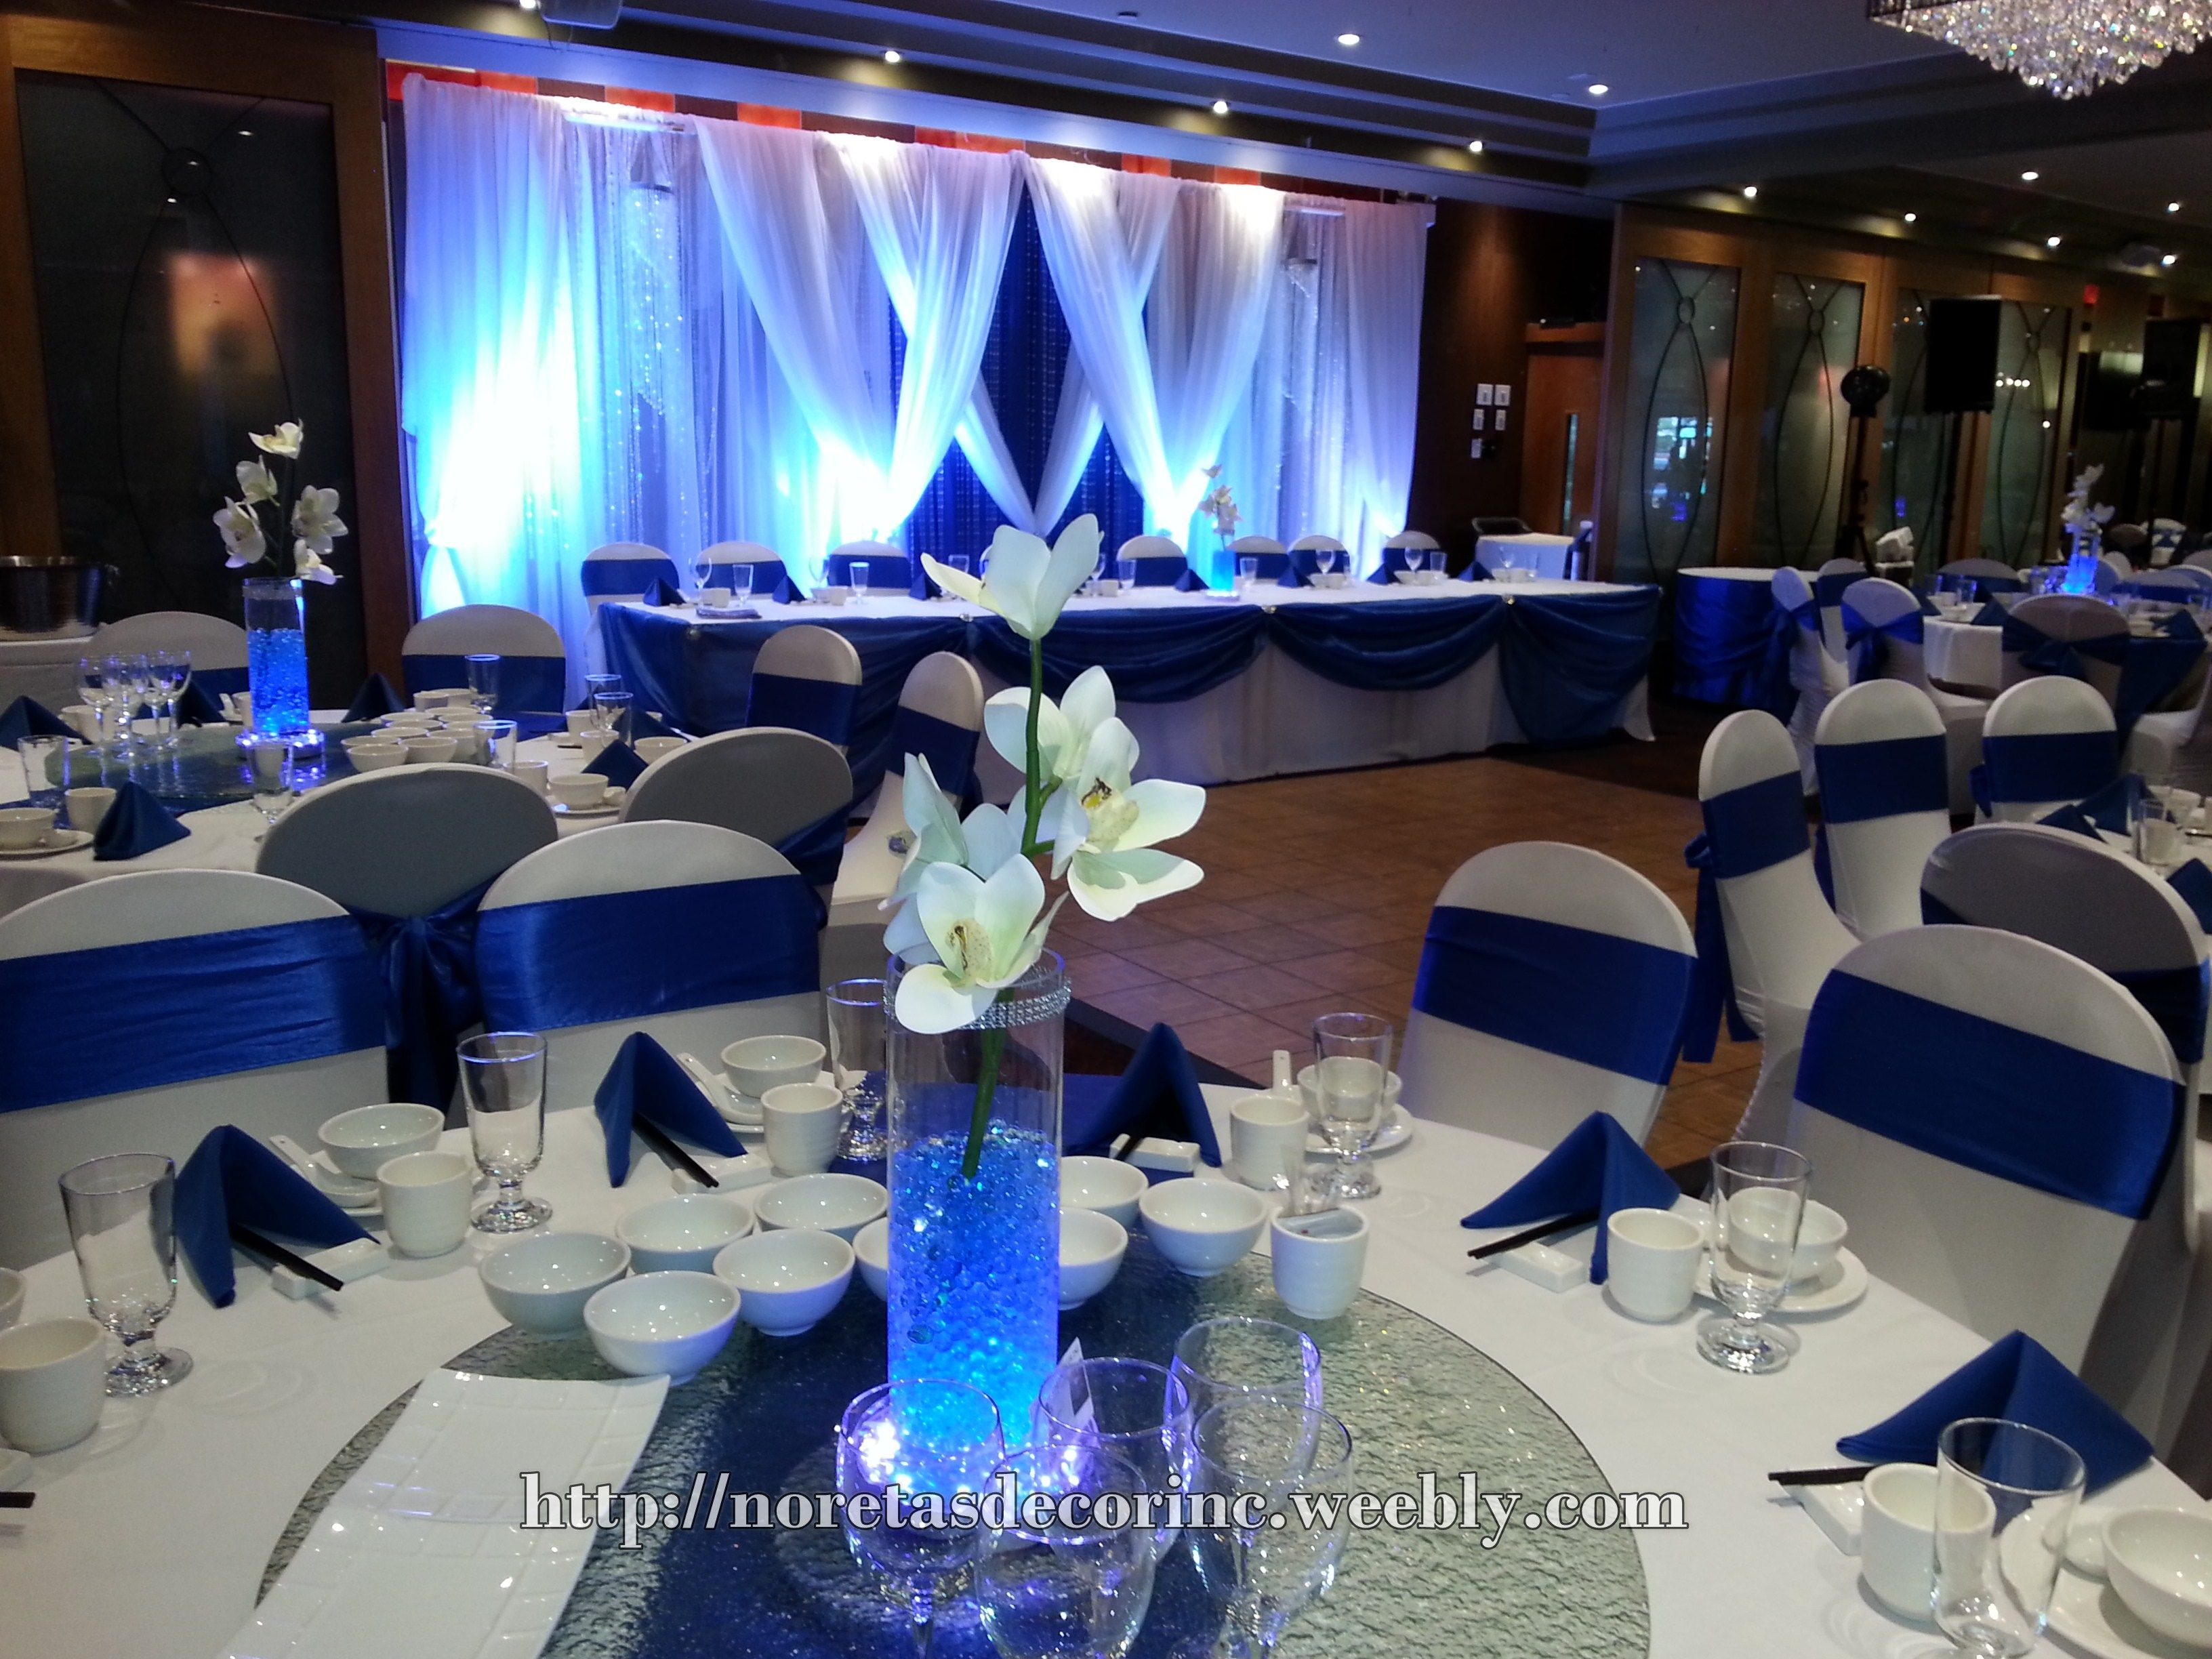 Popsugar White Wedding Decorations Royal Blue Wedding Decorations Blue Wedding Decorations